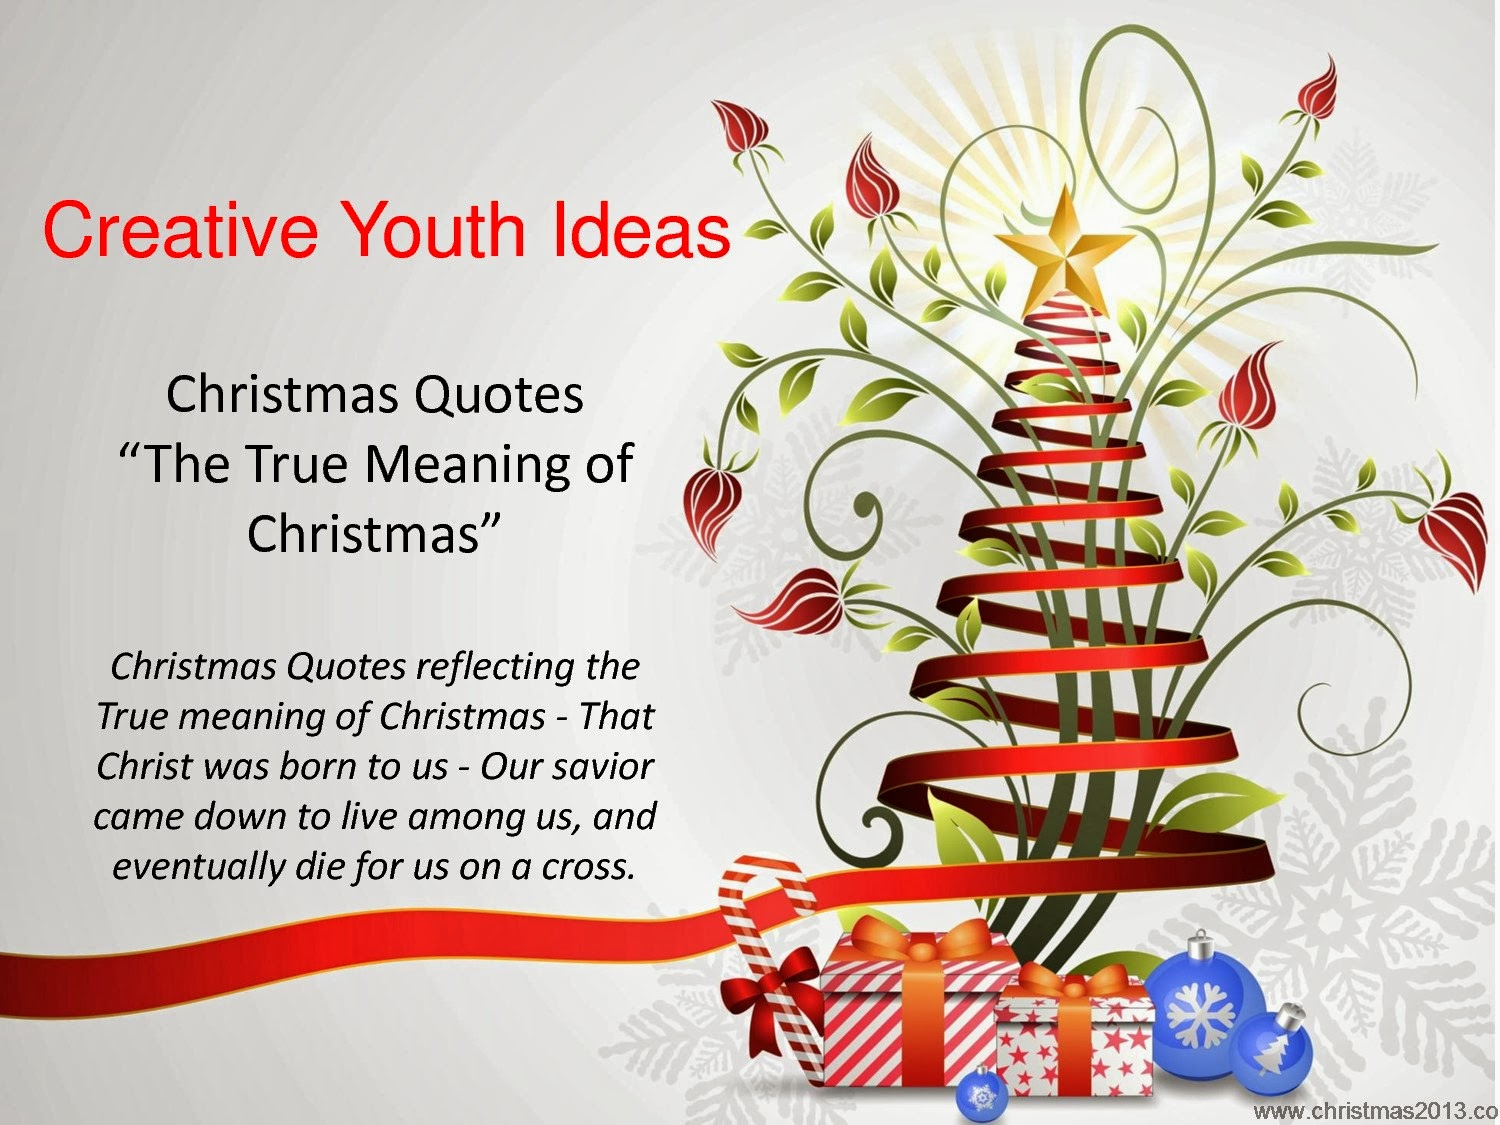 Christmas quote #4